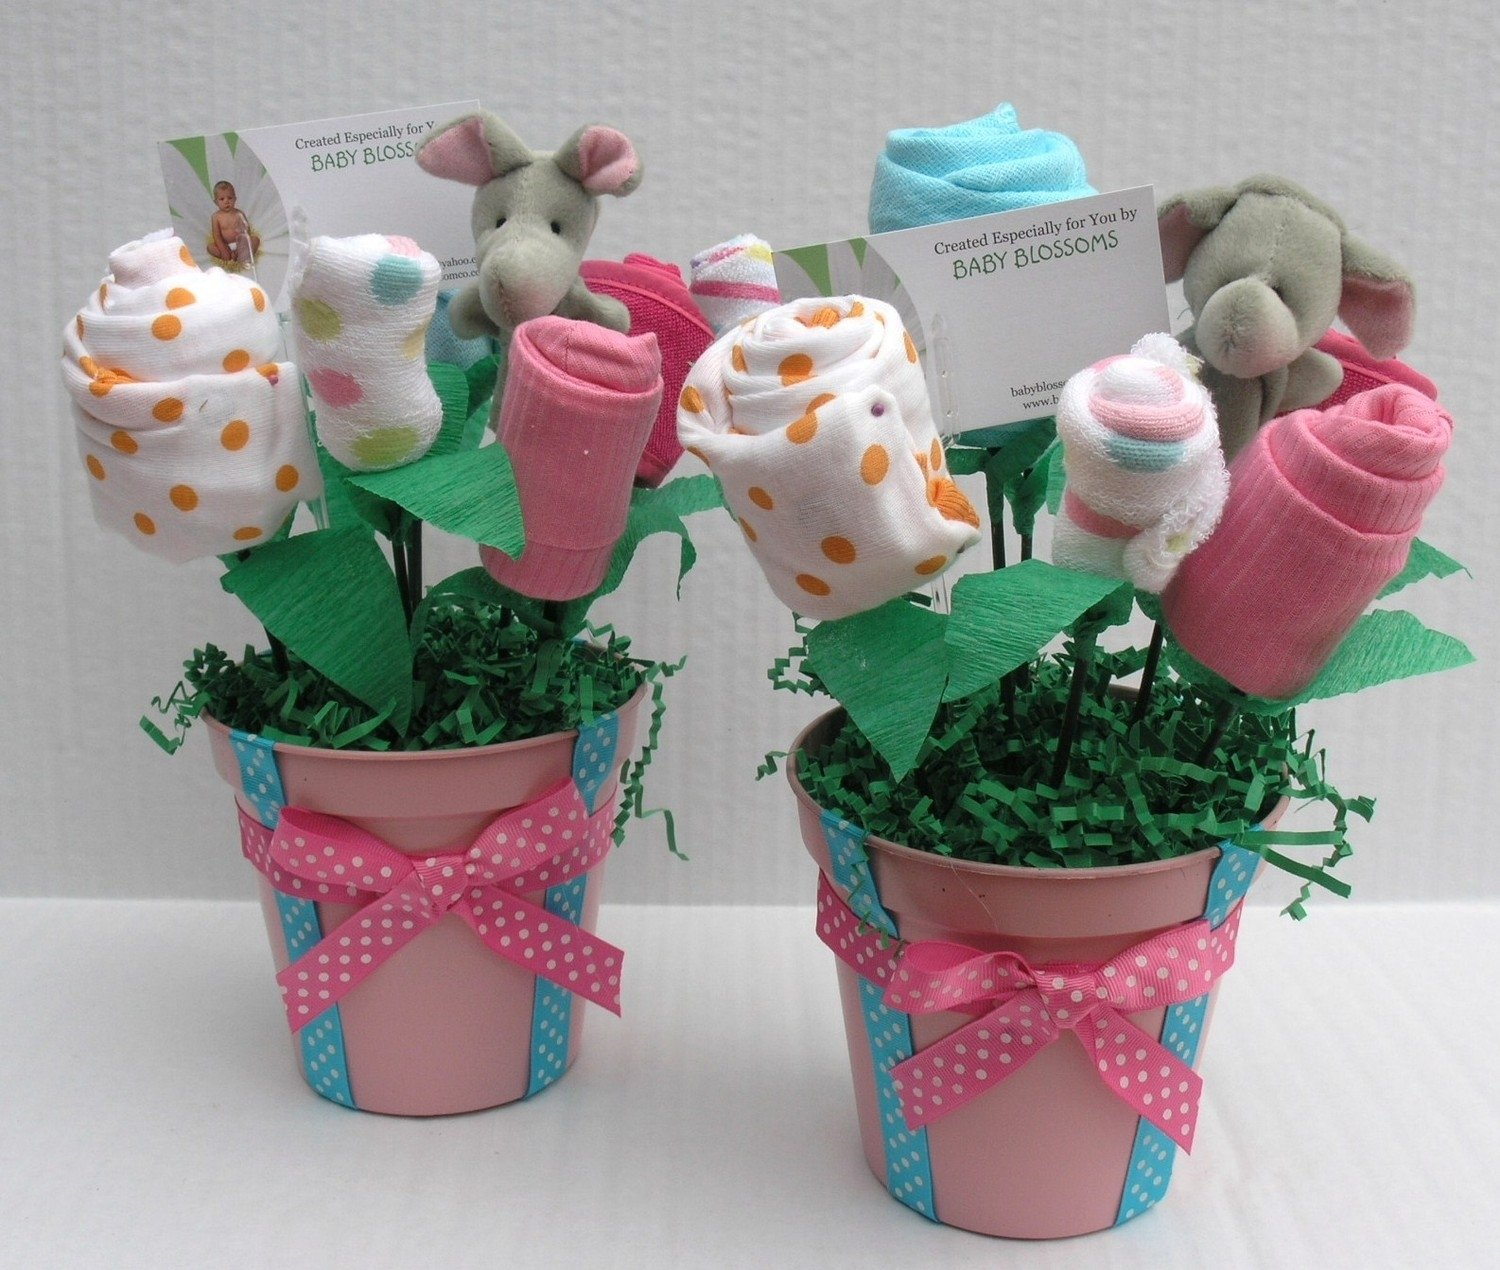 10 Stylish Centerpiece Ideas For Baby Shower themes baby shower centerpieces for baby showers themes baby showers 2020